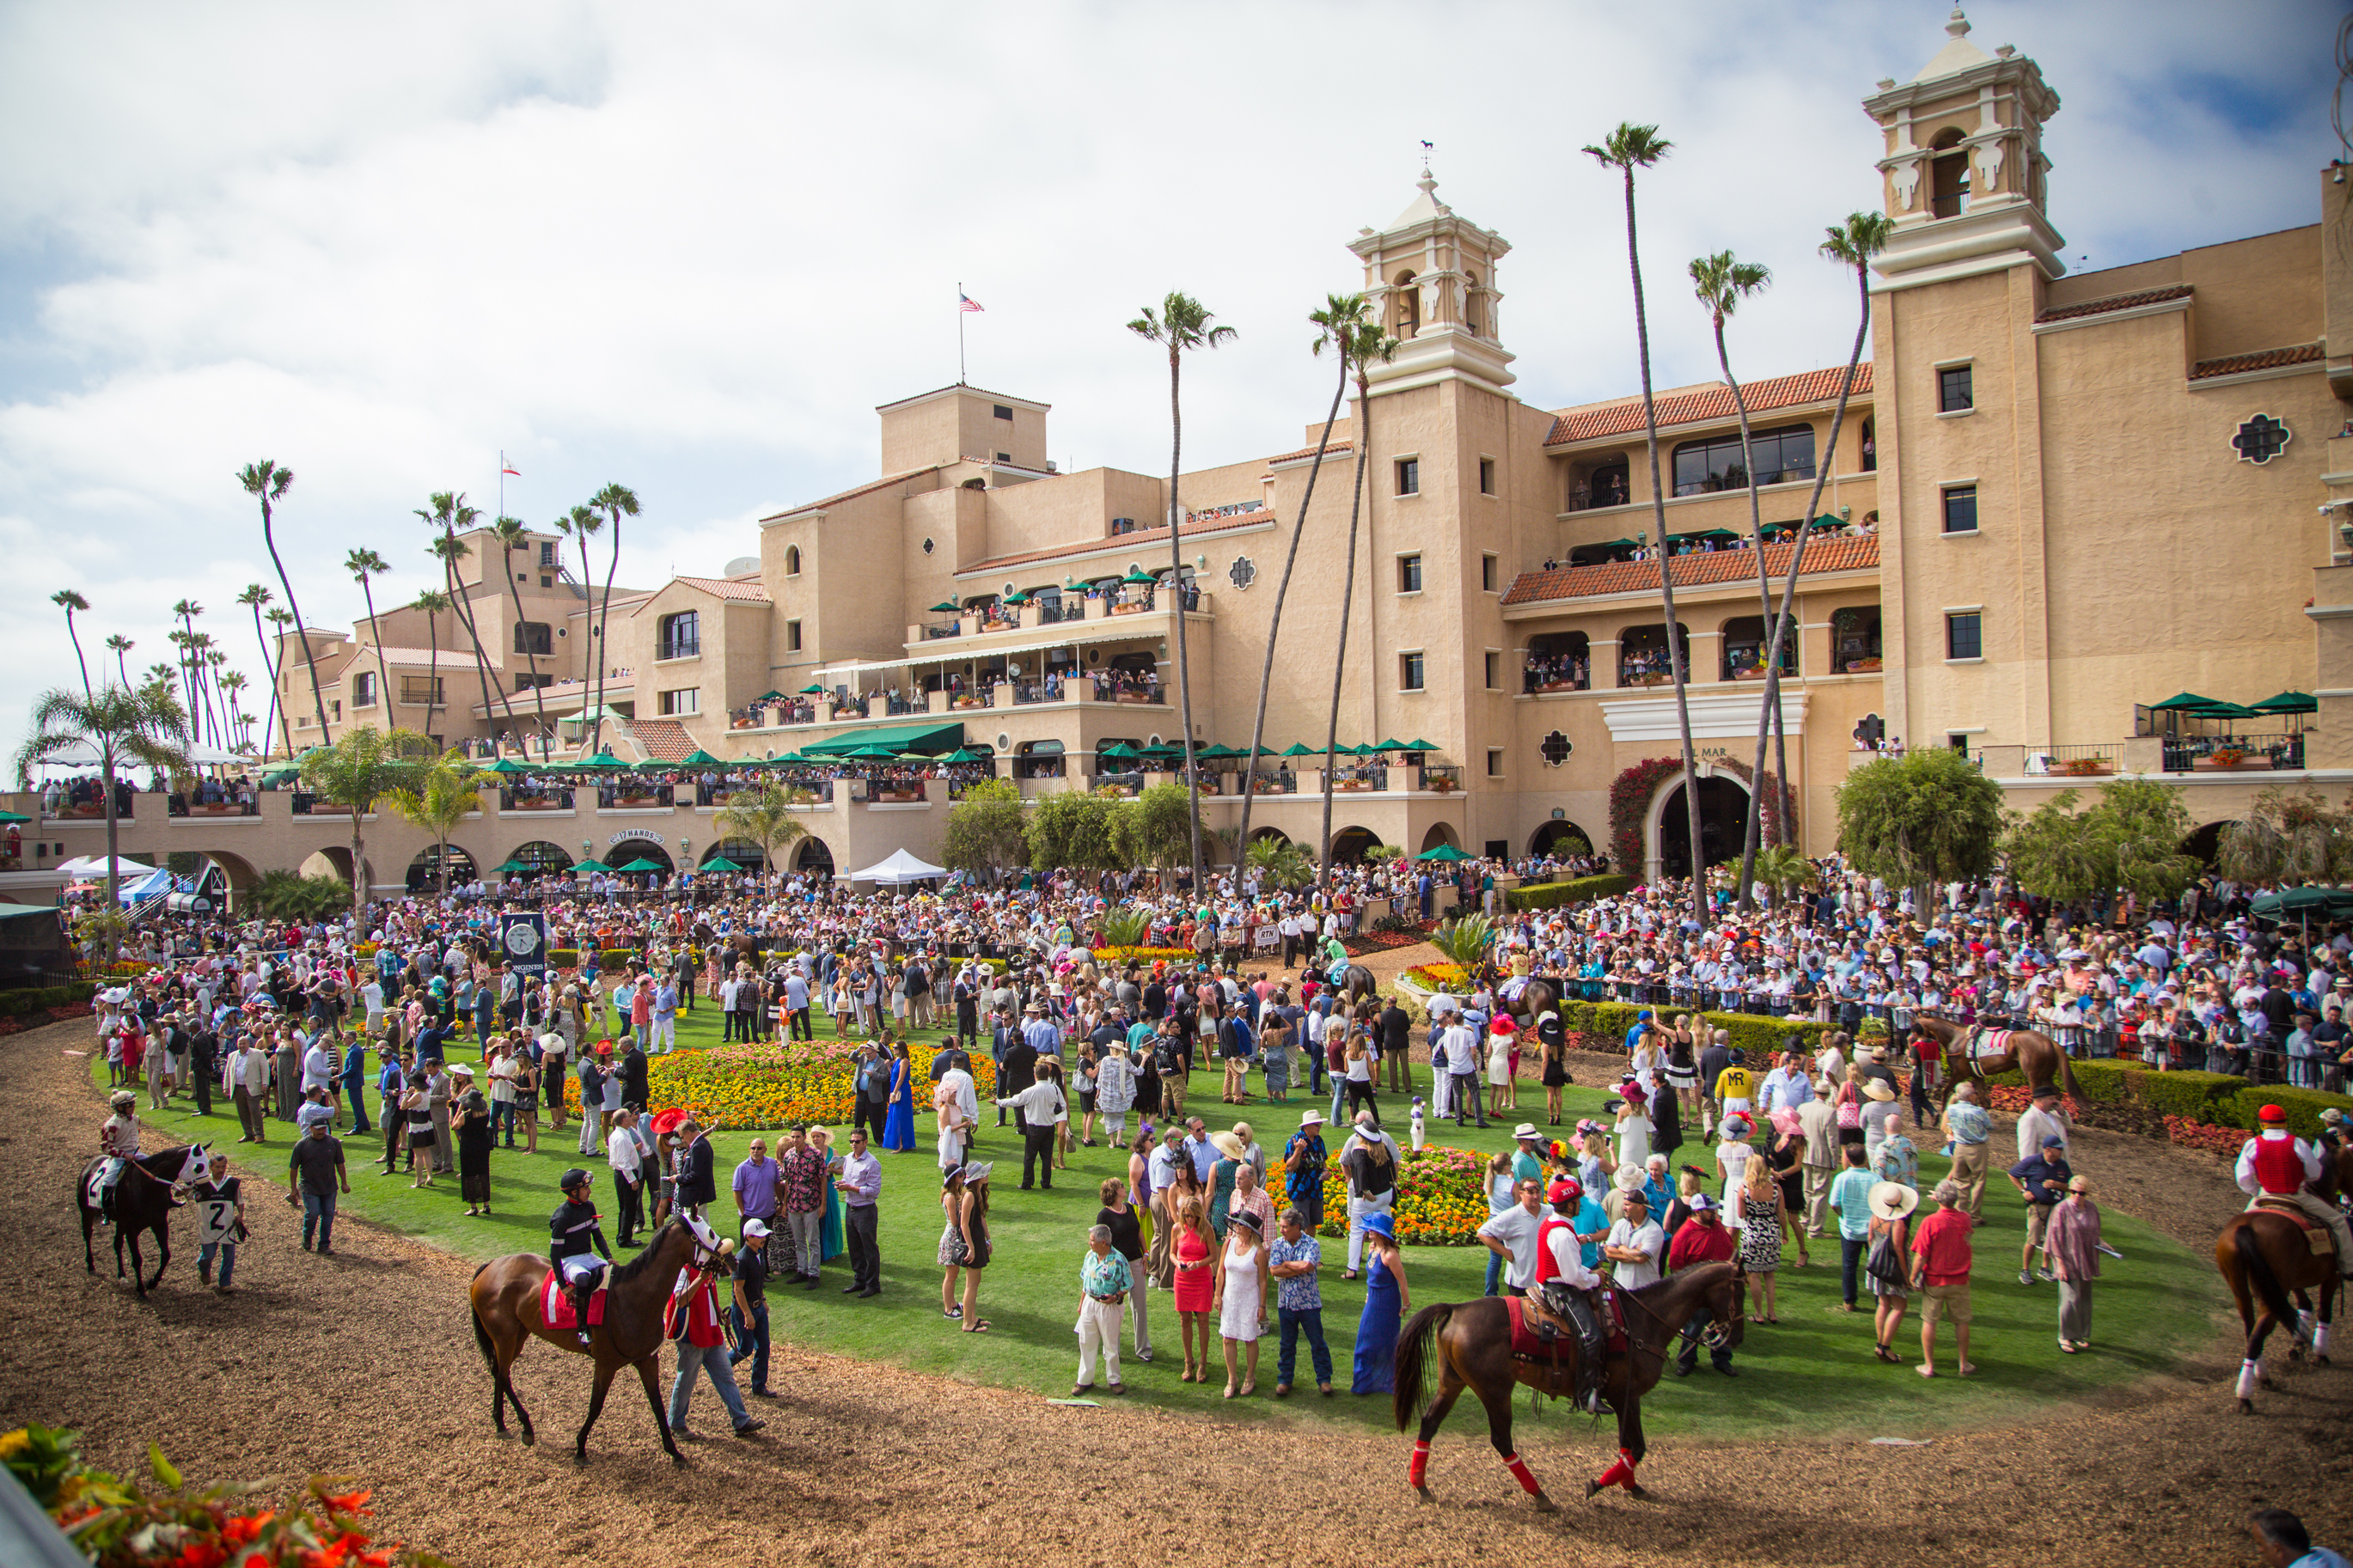 Del mar race track season 2018 complete guide ync for Photographs for sale online